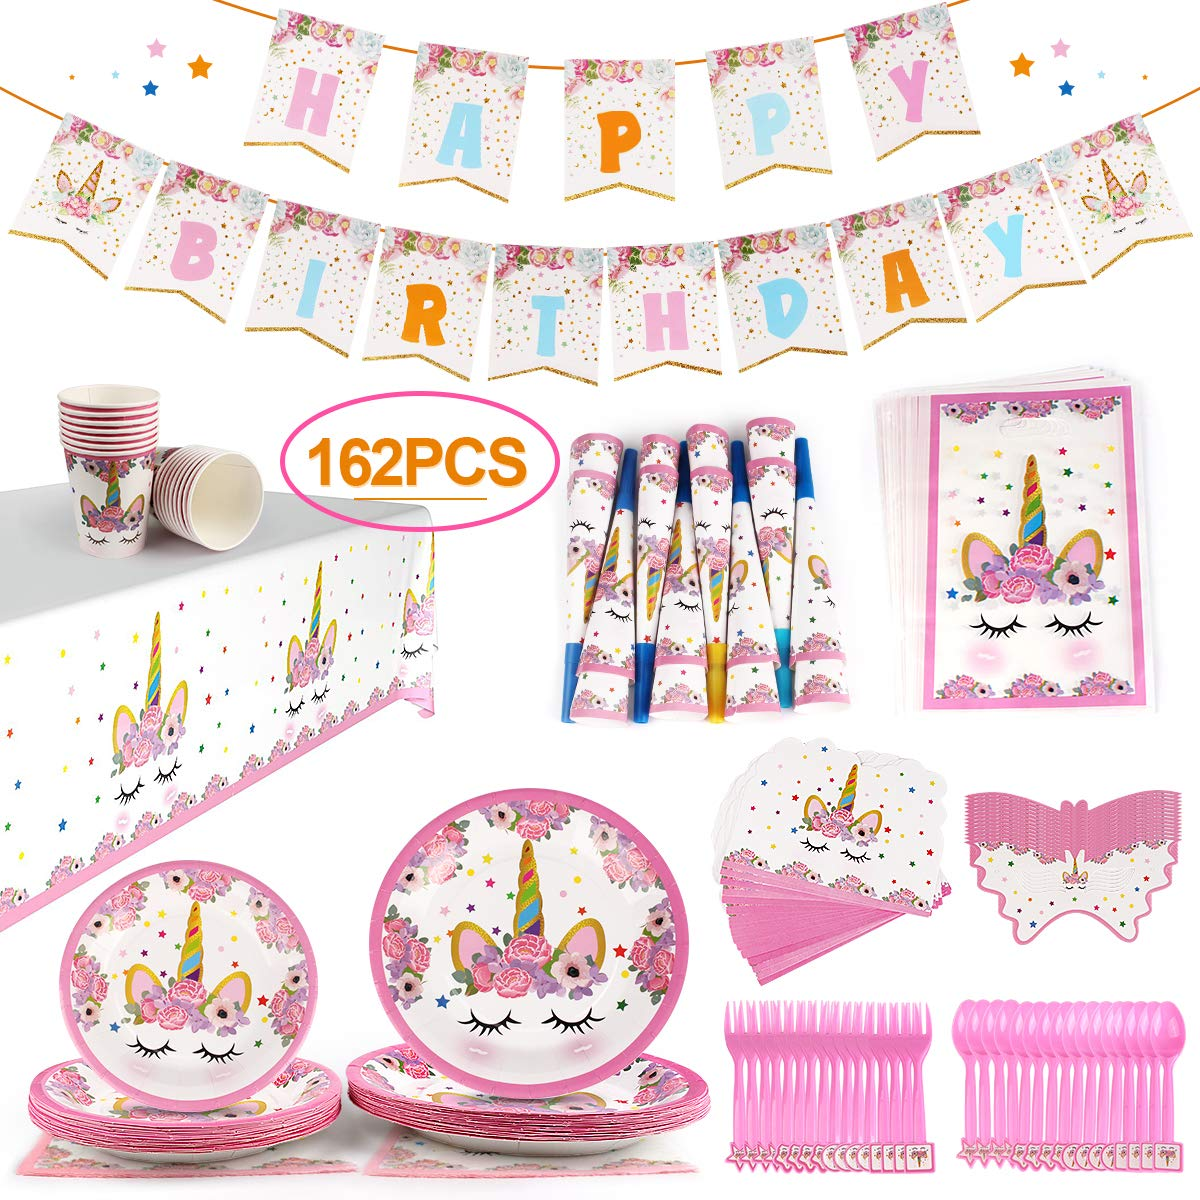 GobiDex 162PCS Magical Unicorn Party Supplies Set Serves Sweet 16 Party Supplies Unicorn Party Favors Decorations Disposable Eco Friendly Plates Cups and Napkins No Wash Up for Party People by GobiDex